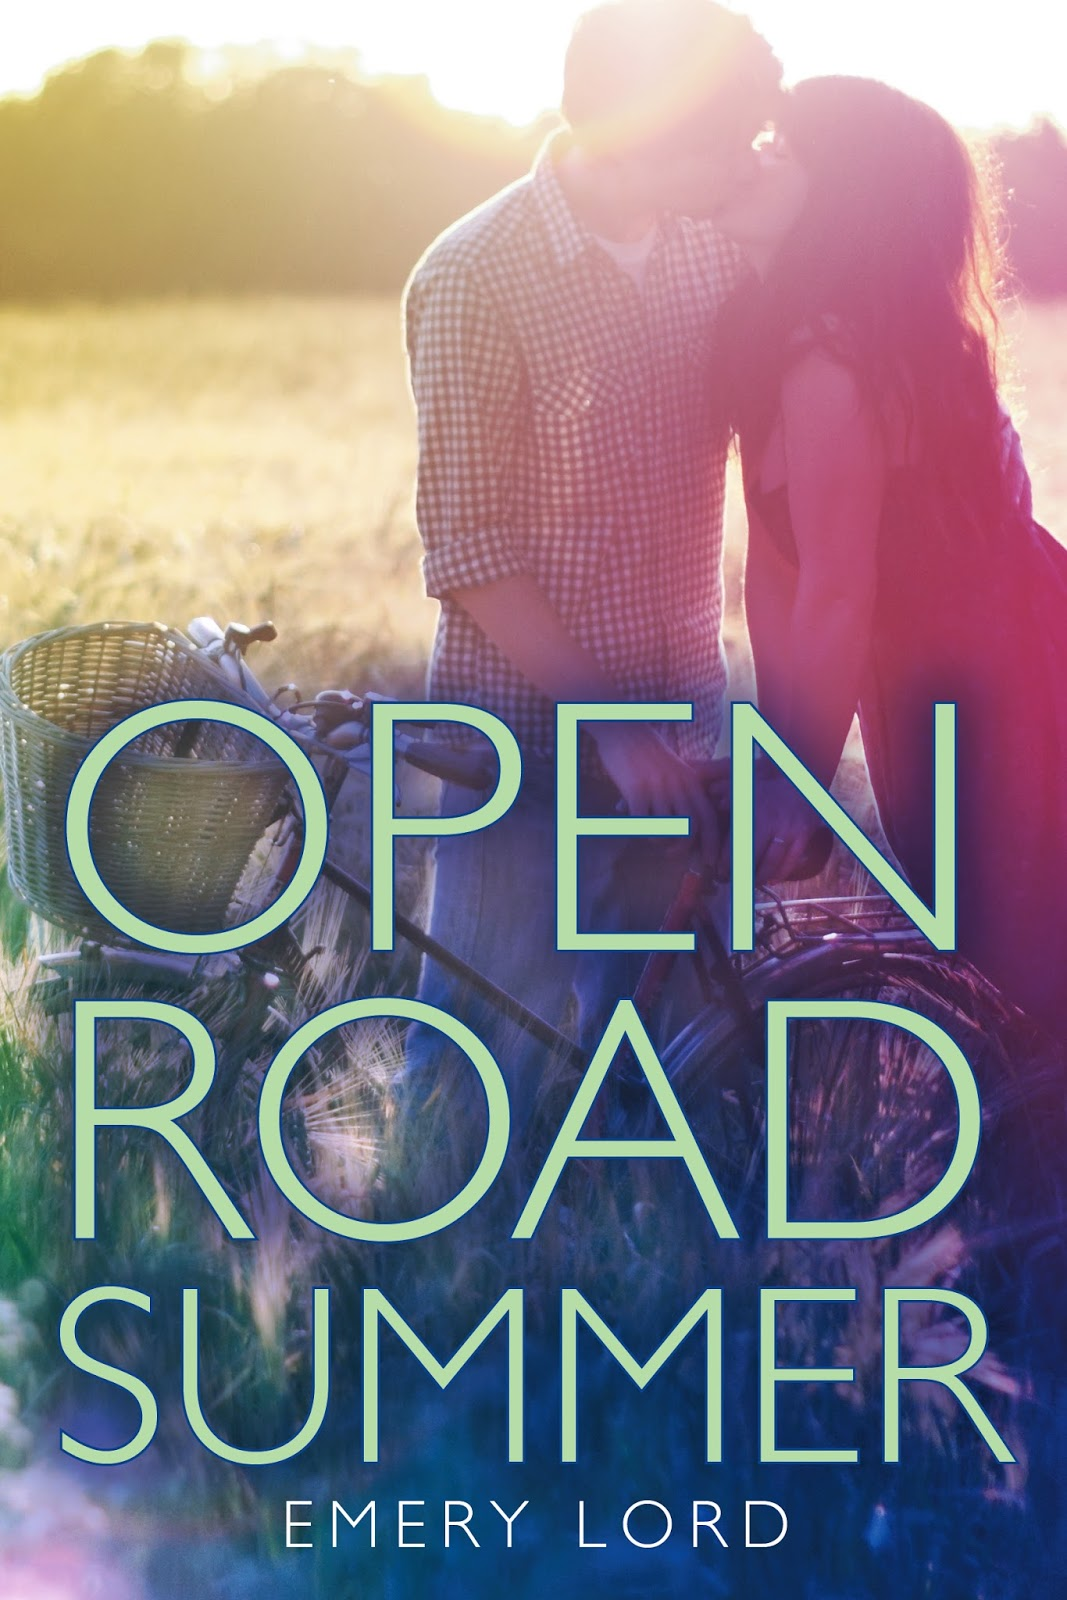 http://www.amazon.com/Open-Road-Summer-Emery-Lord-ebook/dp/B00J2VDX84/ref=sr_1_1?s=digital-text&ie=UTF8&qid=1402679689&sr=1-1&keywords=open+road+summer